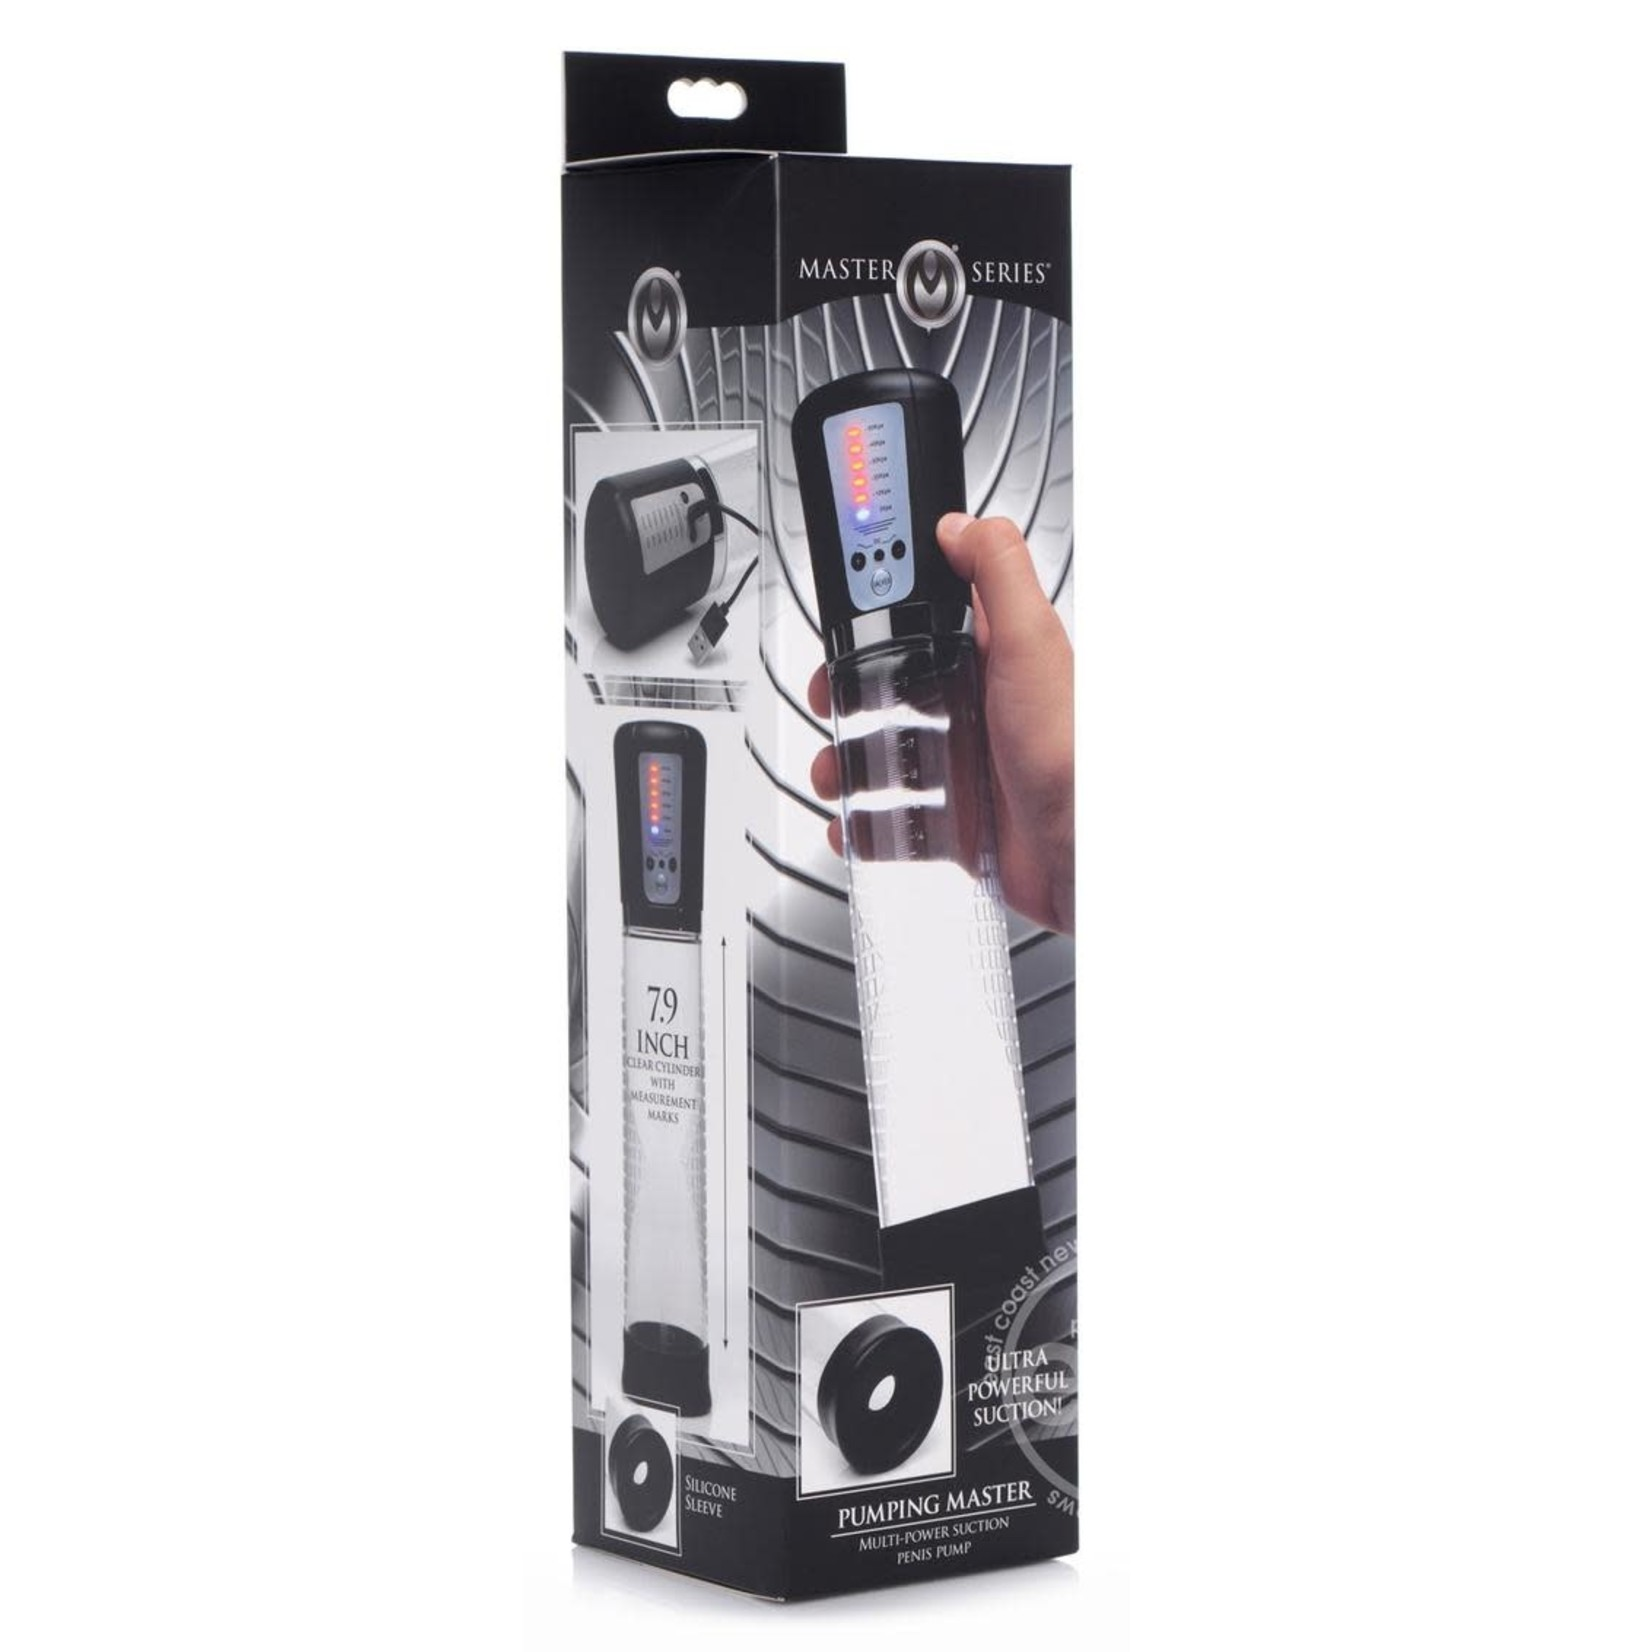 Master Series Pumping Master Rechargeable Penis Pump